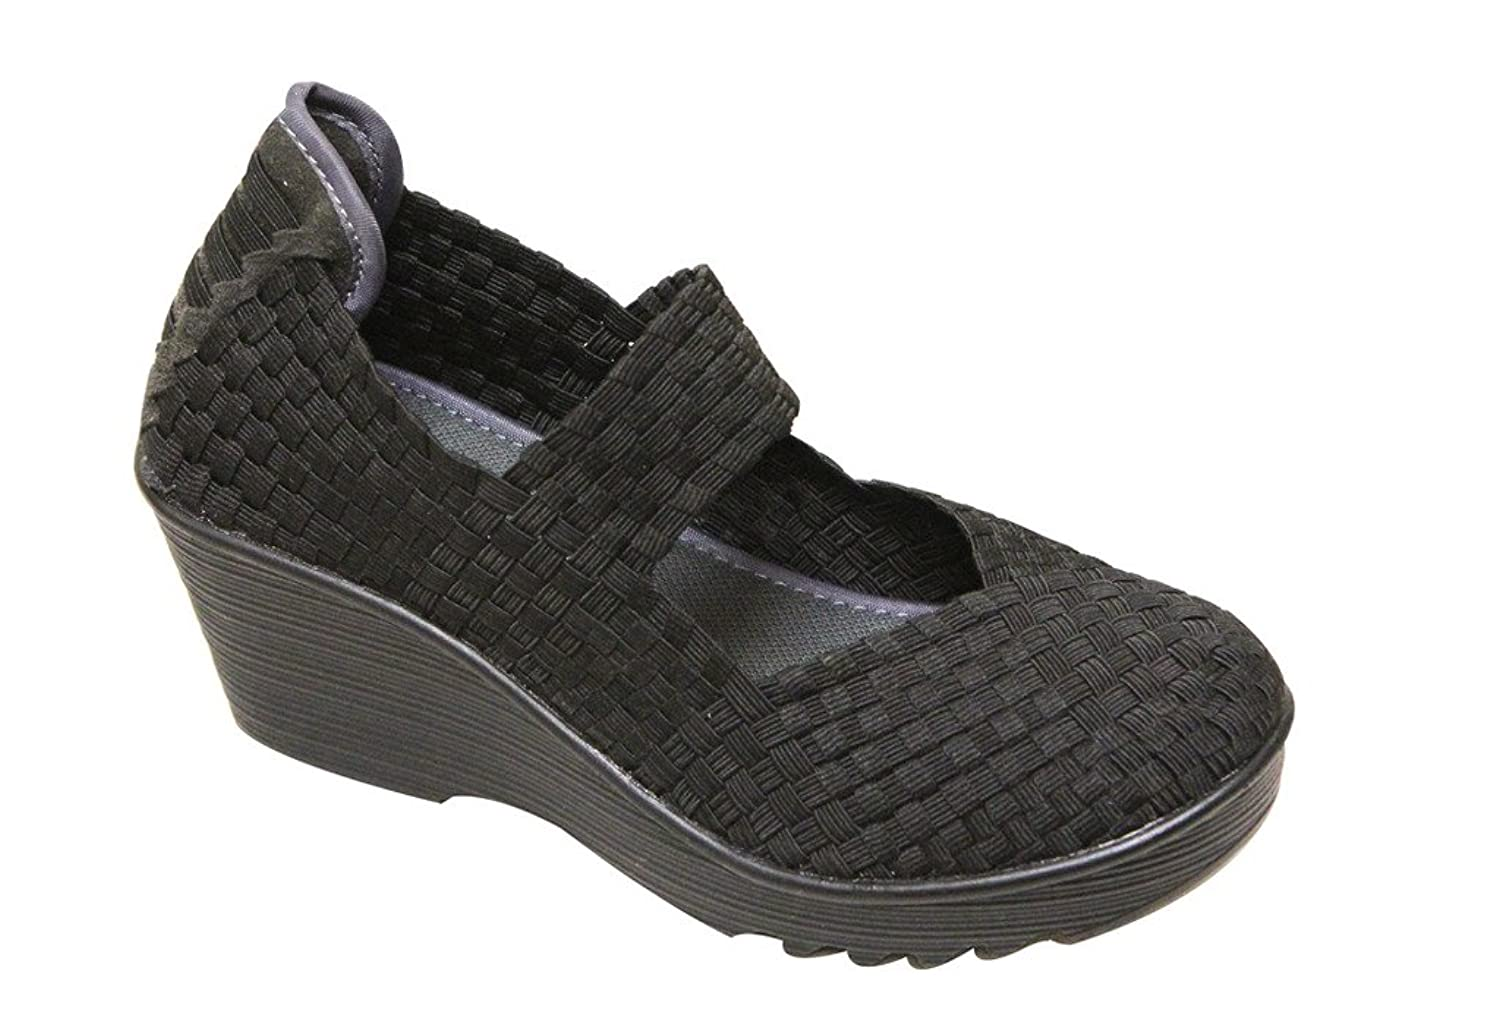 ff072f6f39dc Nature Breeze Mascara-03 Women s Round Toe Woven Braid Vamp Mary Jane  Squeaky Platform Wedge Comfort Shoes